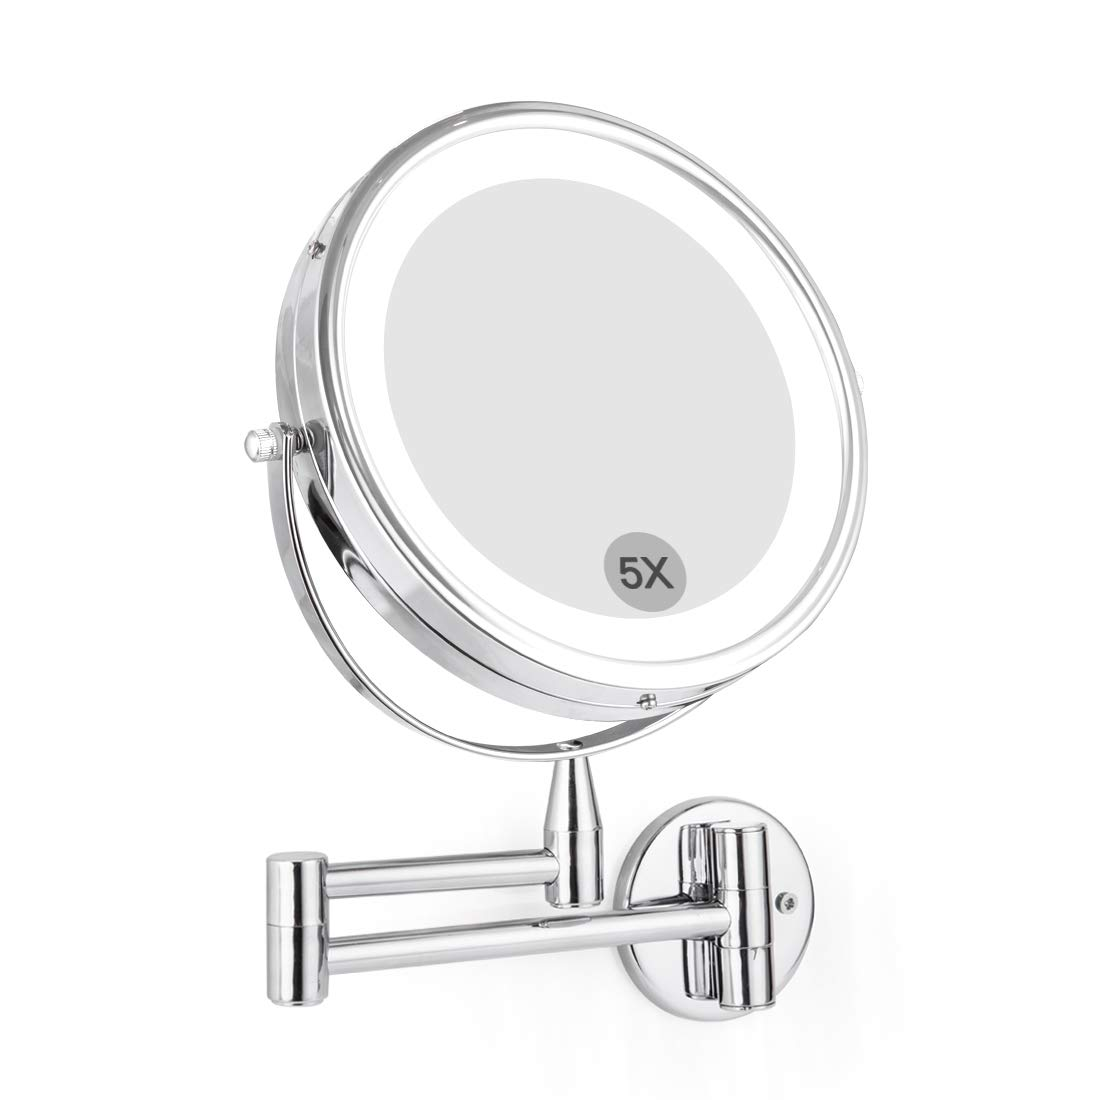 "Wall Mounted LED Magnifying Mirror 5X Makeup 8"" Lighted Double Side 360 Degree Vanity Magnification Swivel Extendable Mirror"